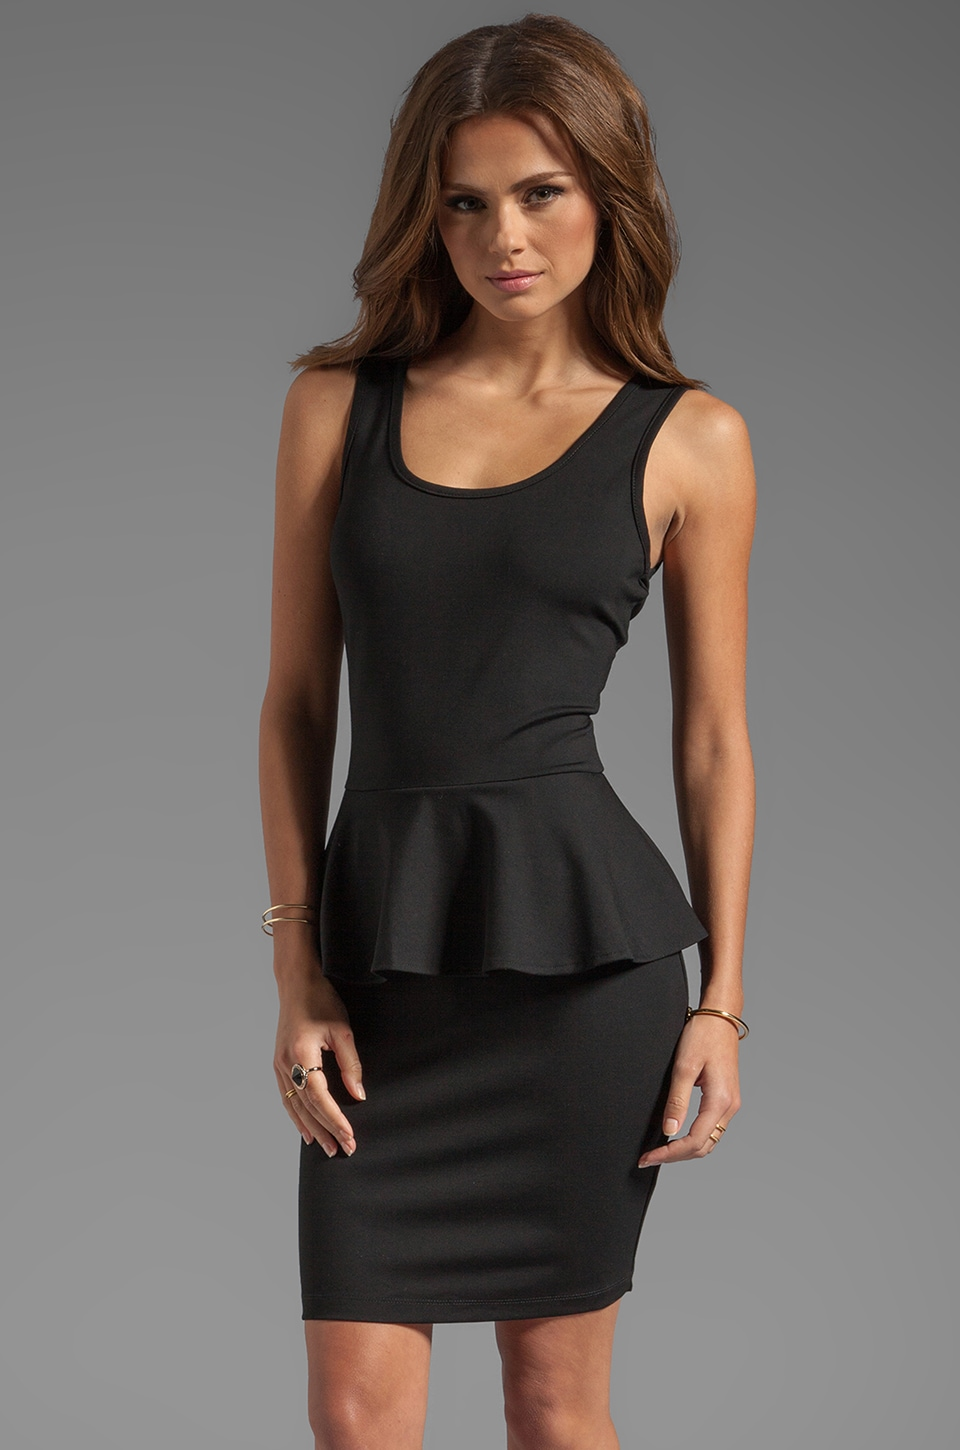 Bobi Peplum Tank Dress in Black